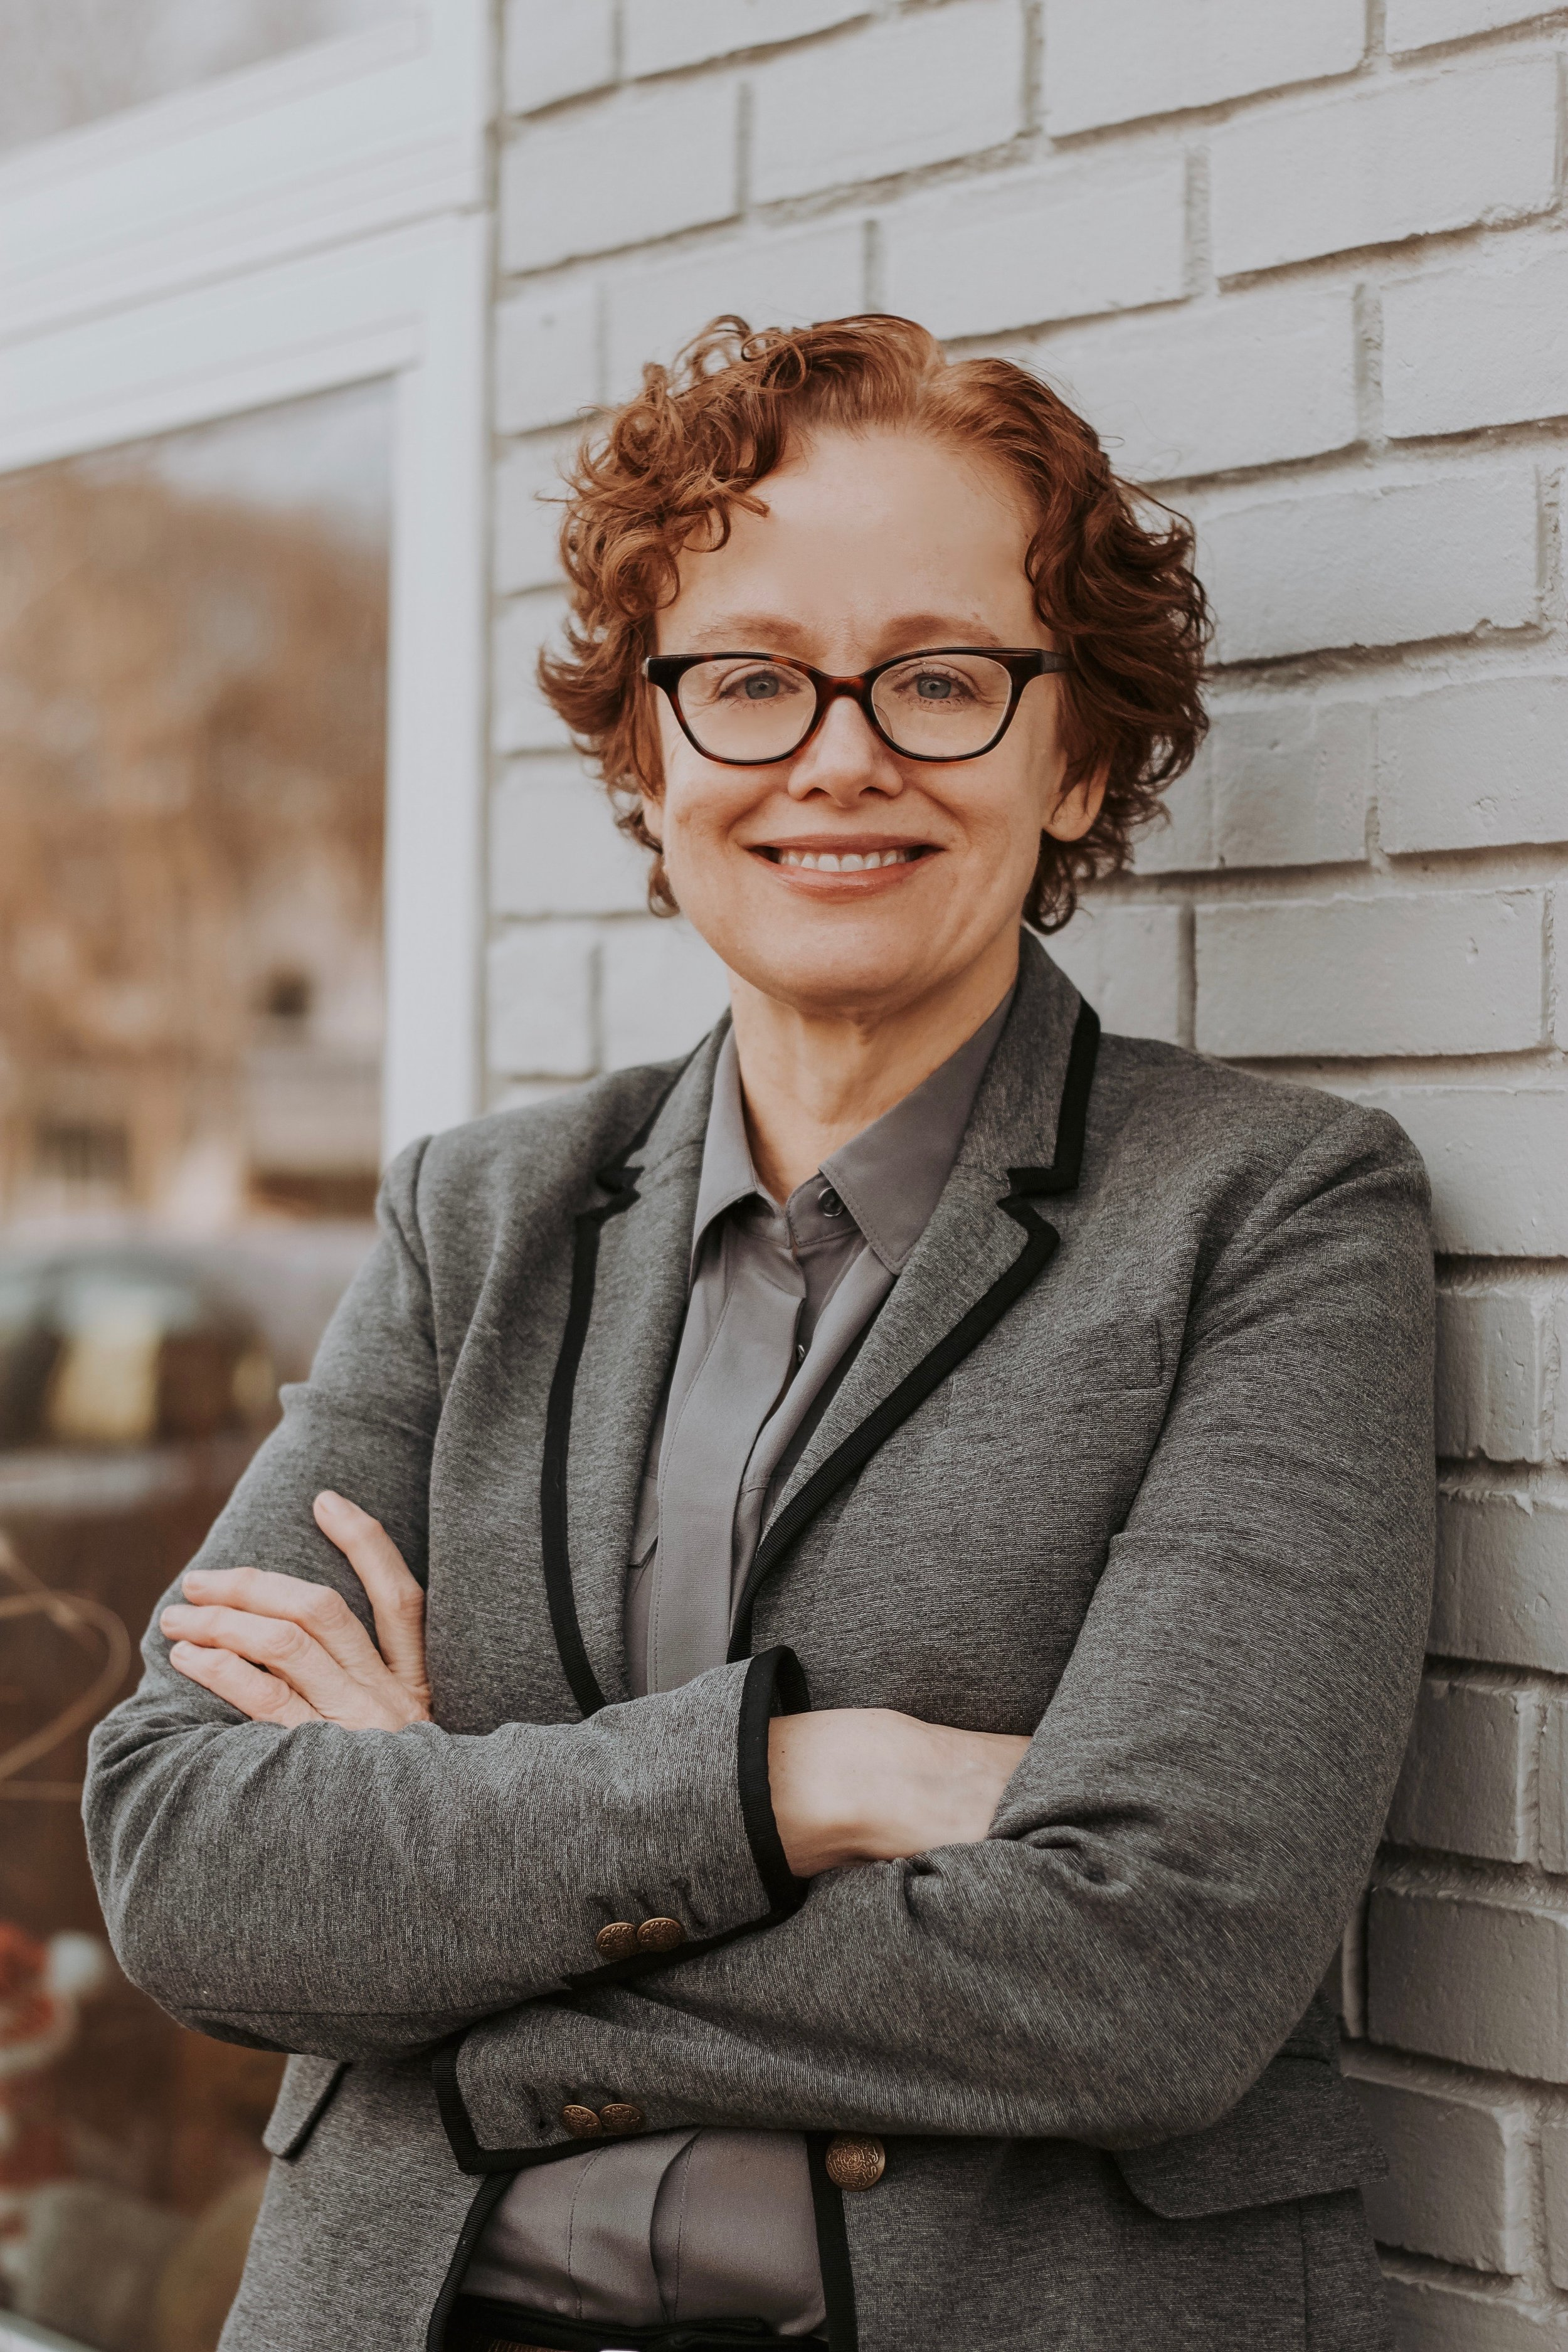 Mary Van Note - Marketing: English degree from fancy-pants Eastern school and enriching Planning Director stints at Fallon and BBDO. Plus several additional advertising posts coast-to-coast that are too tedious to mention here.Life: All the makings of a great G-rated movie, including a sassy daughter, wacky neighbors and a cat who walks her dog. Add a quirky southern heritage, a sometimes problematic passion for handbags, and a knack for storytelling and you've got Mary, a girl with hair too curly for her own good.